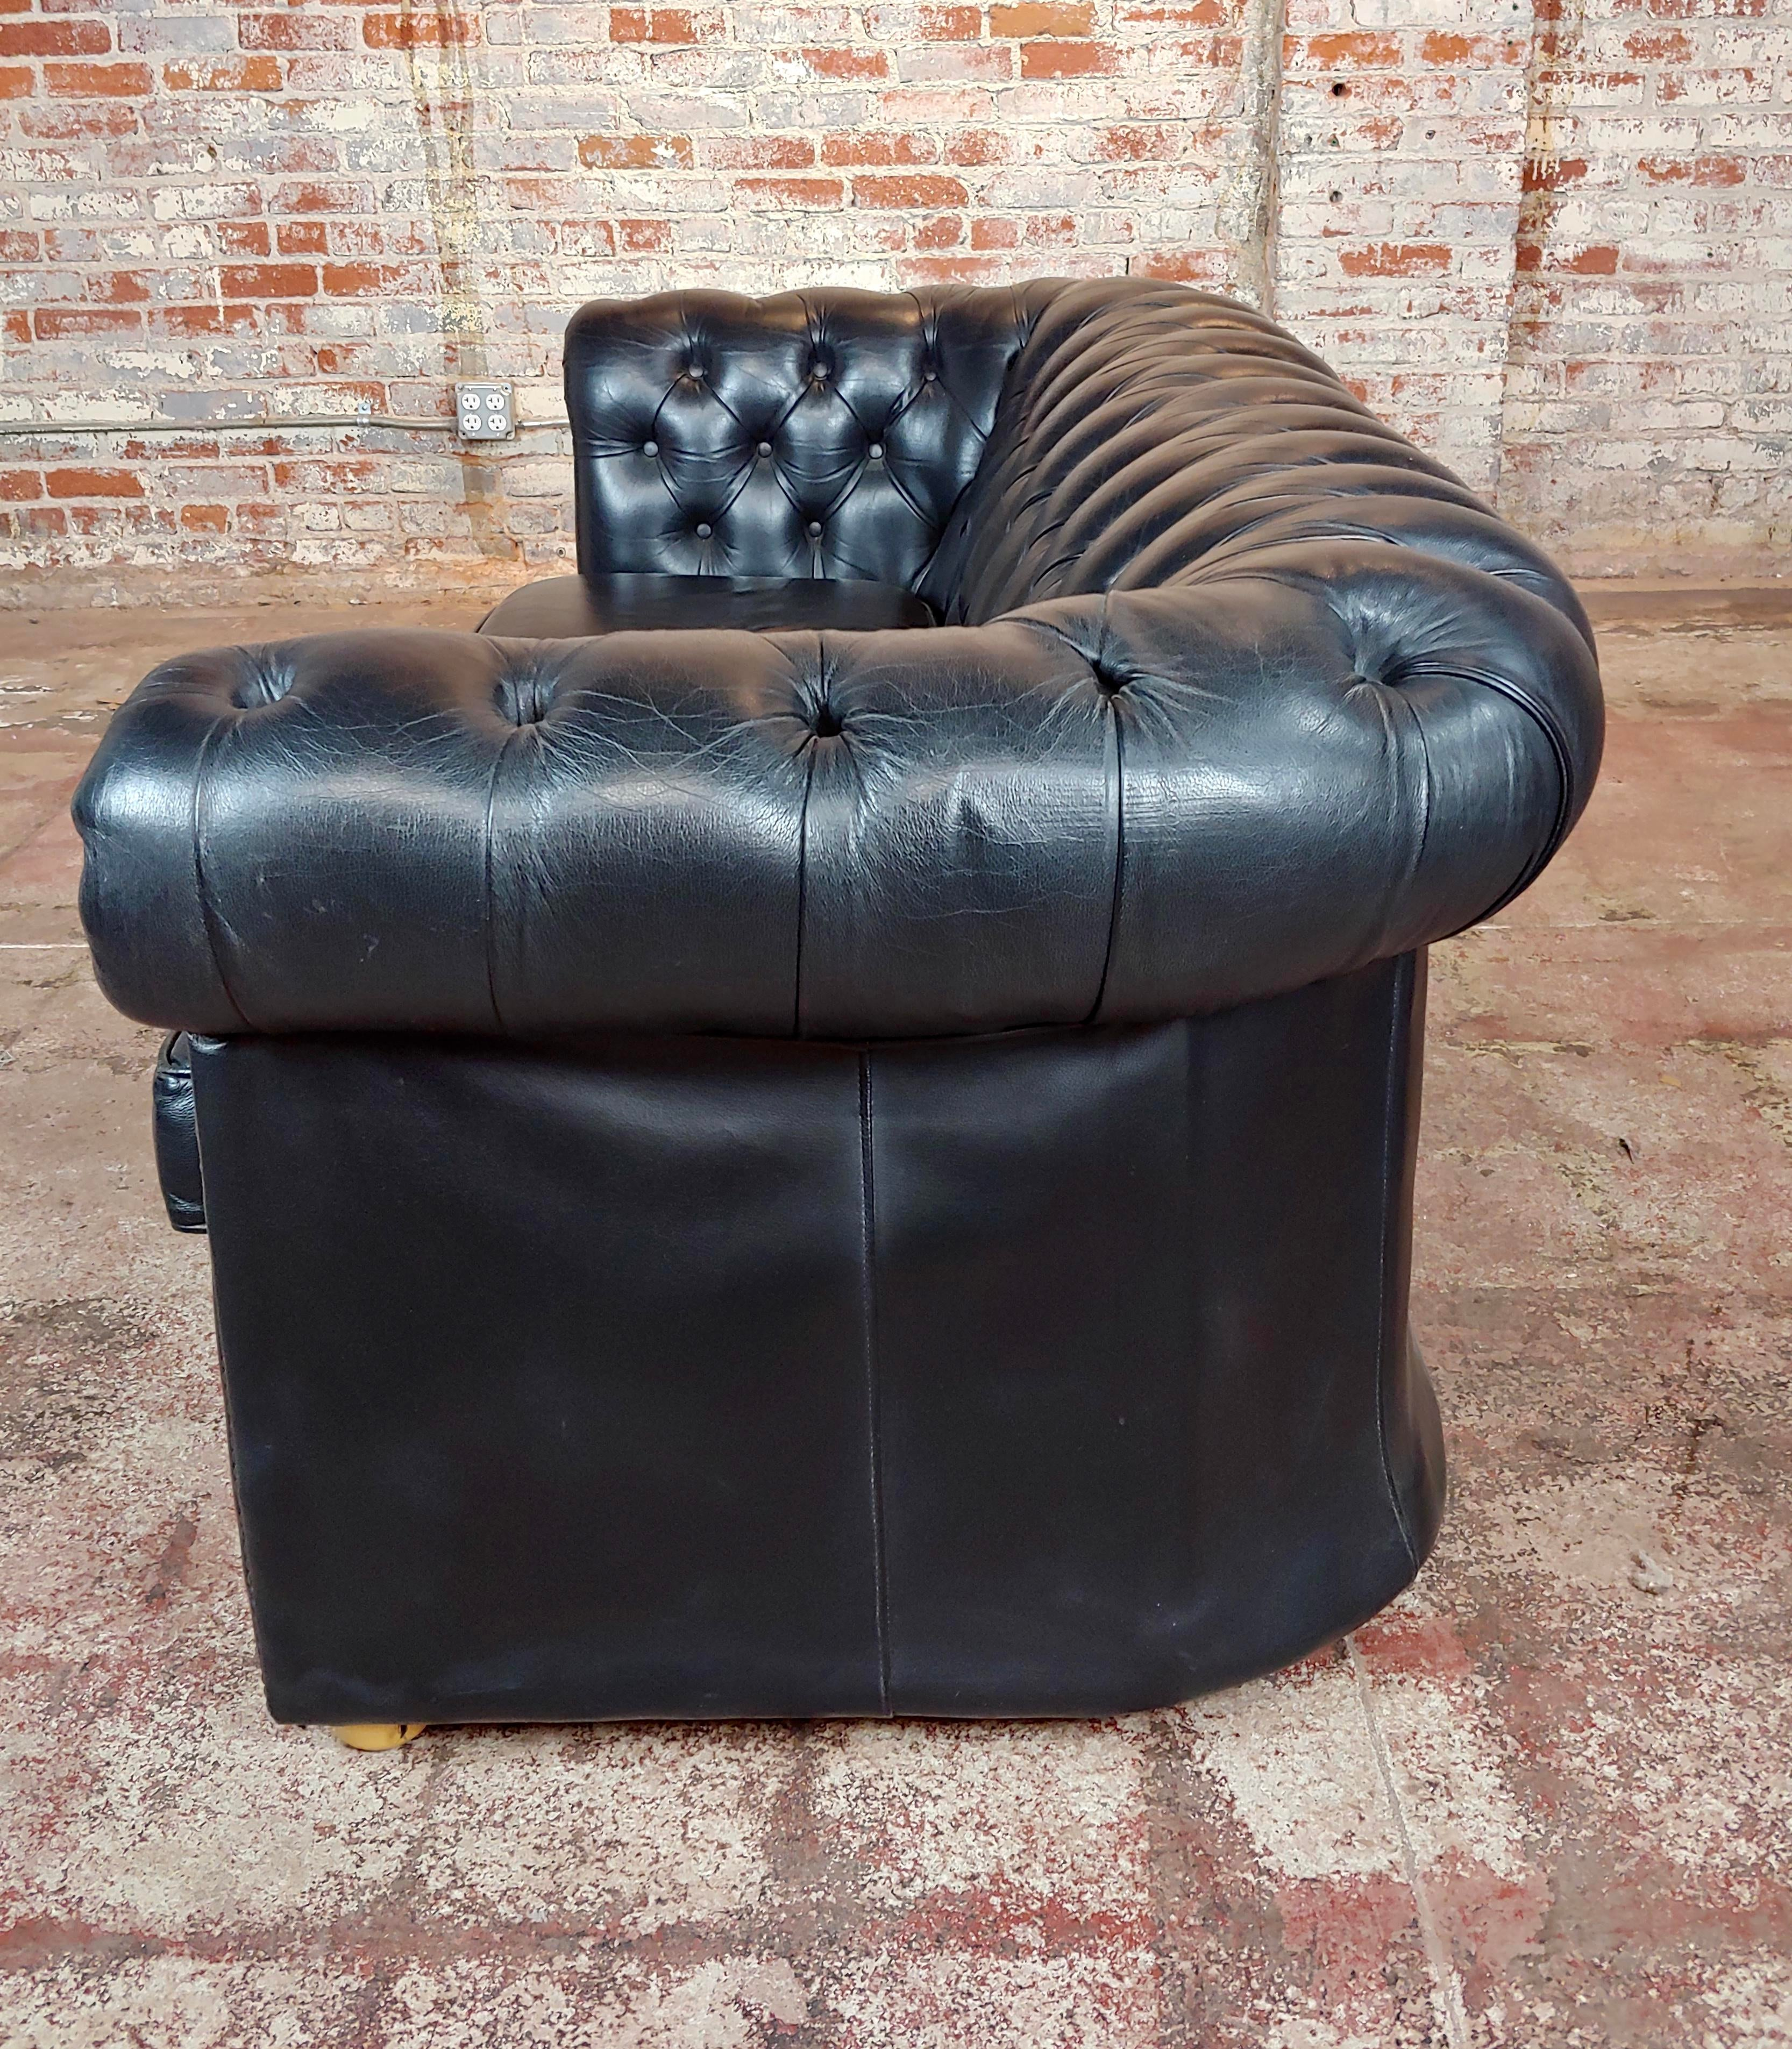 Chesterfield Vintage Black Leather Sofa